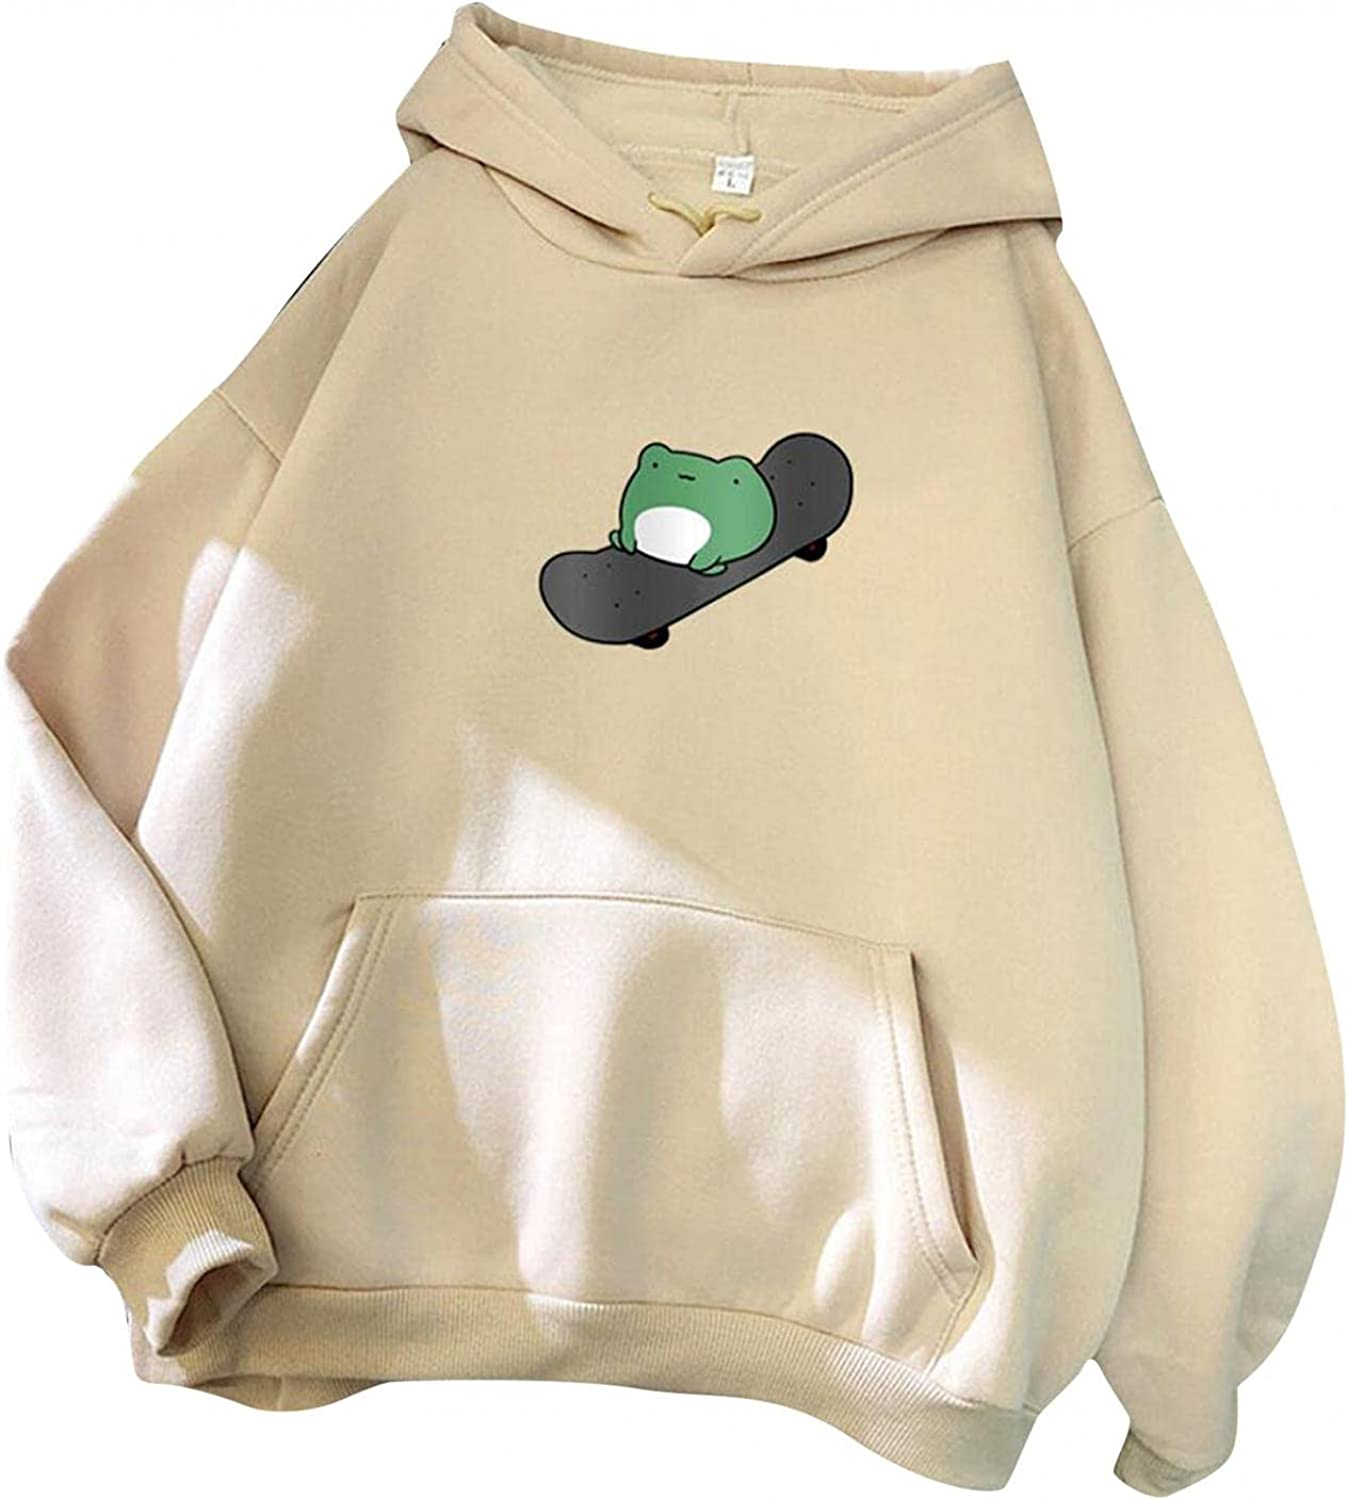 Hoodies for Women with Designs Aesthetic, Teen Girls Frog Sweatshirts with Pockets Casual Long Sleeve Drawstring Tops